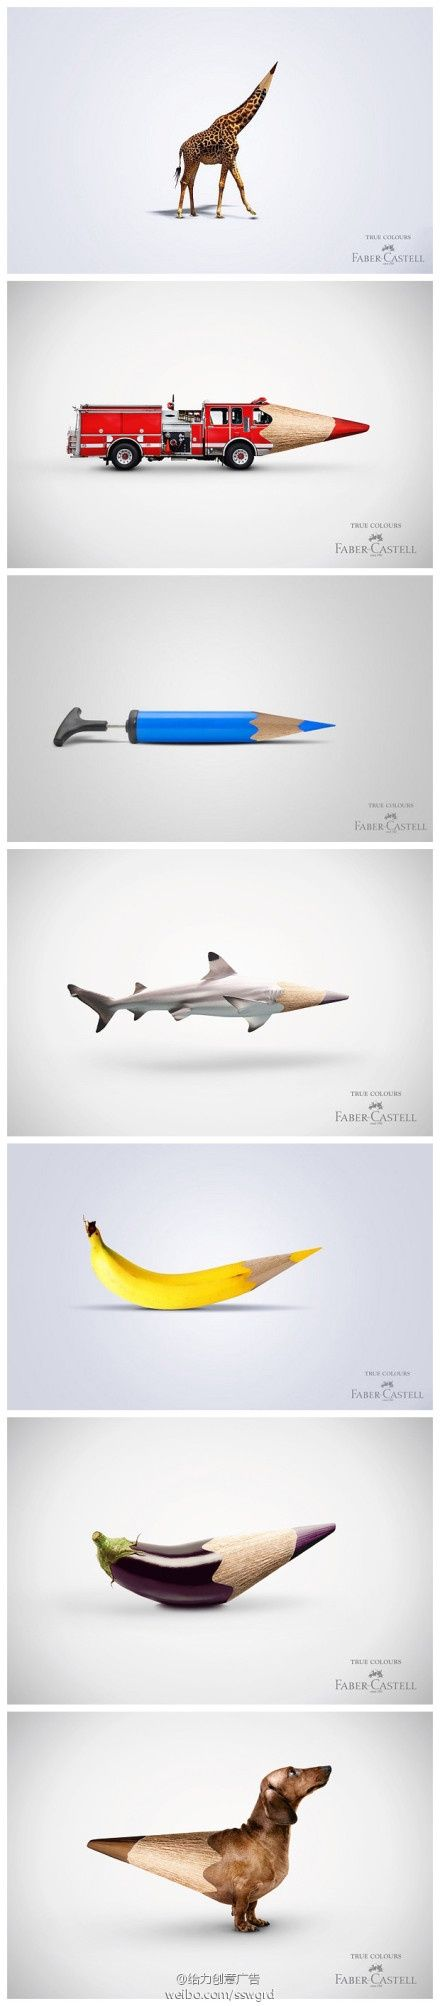 Faber Castell ad